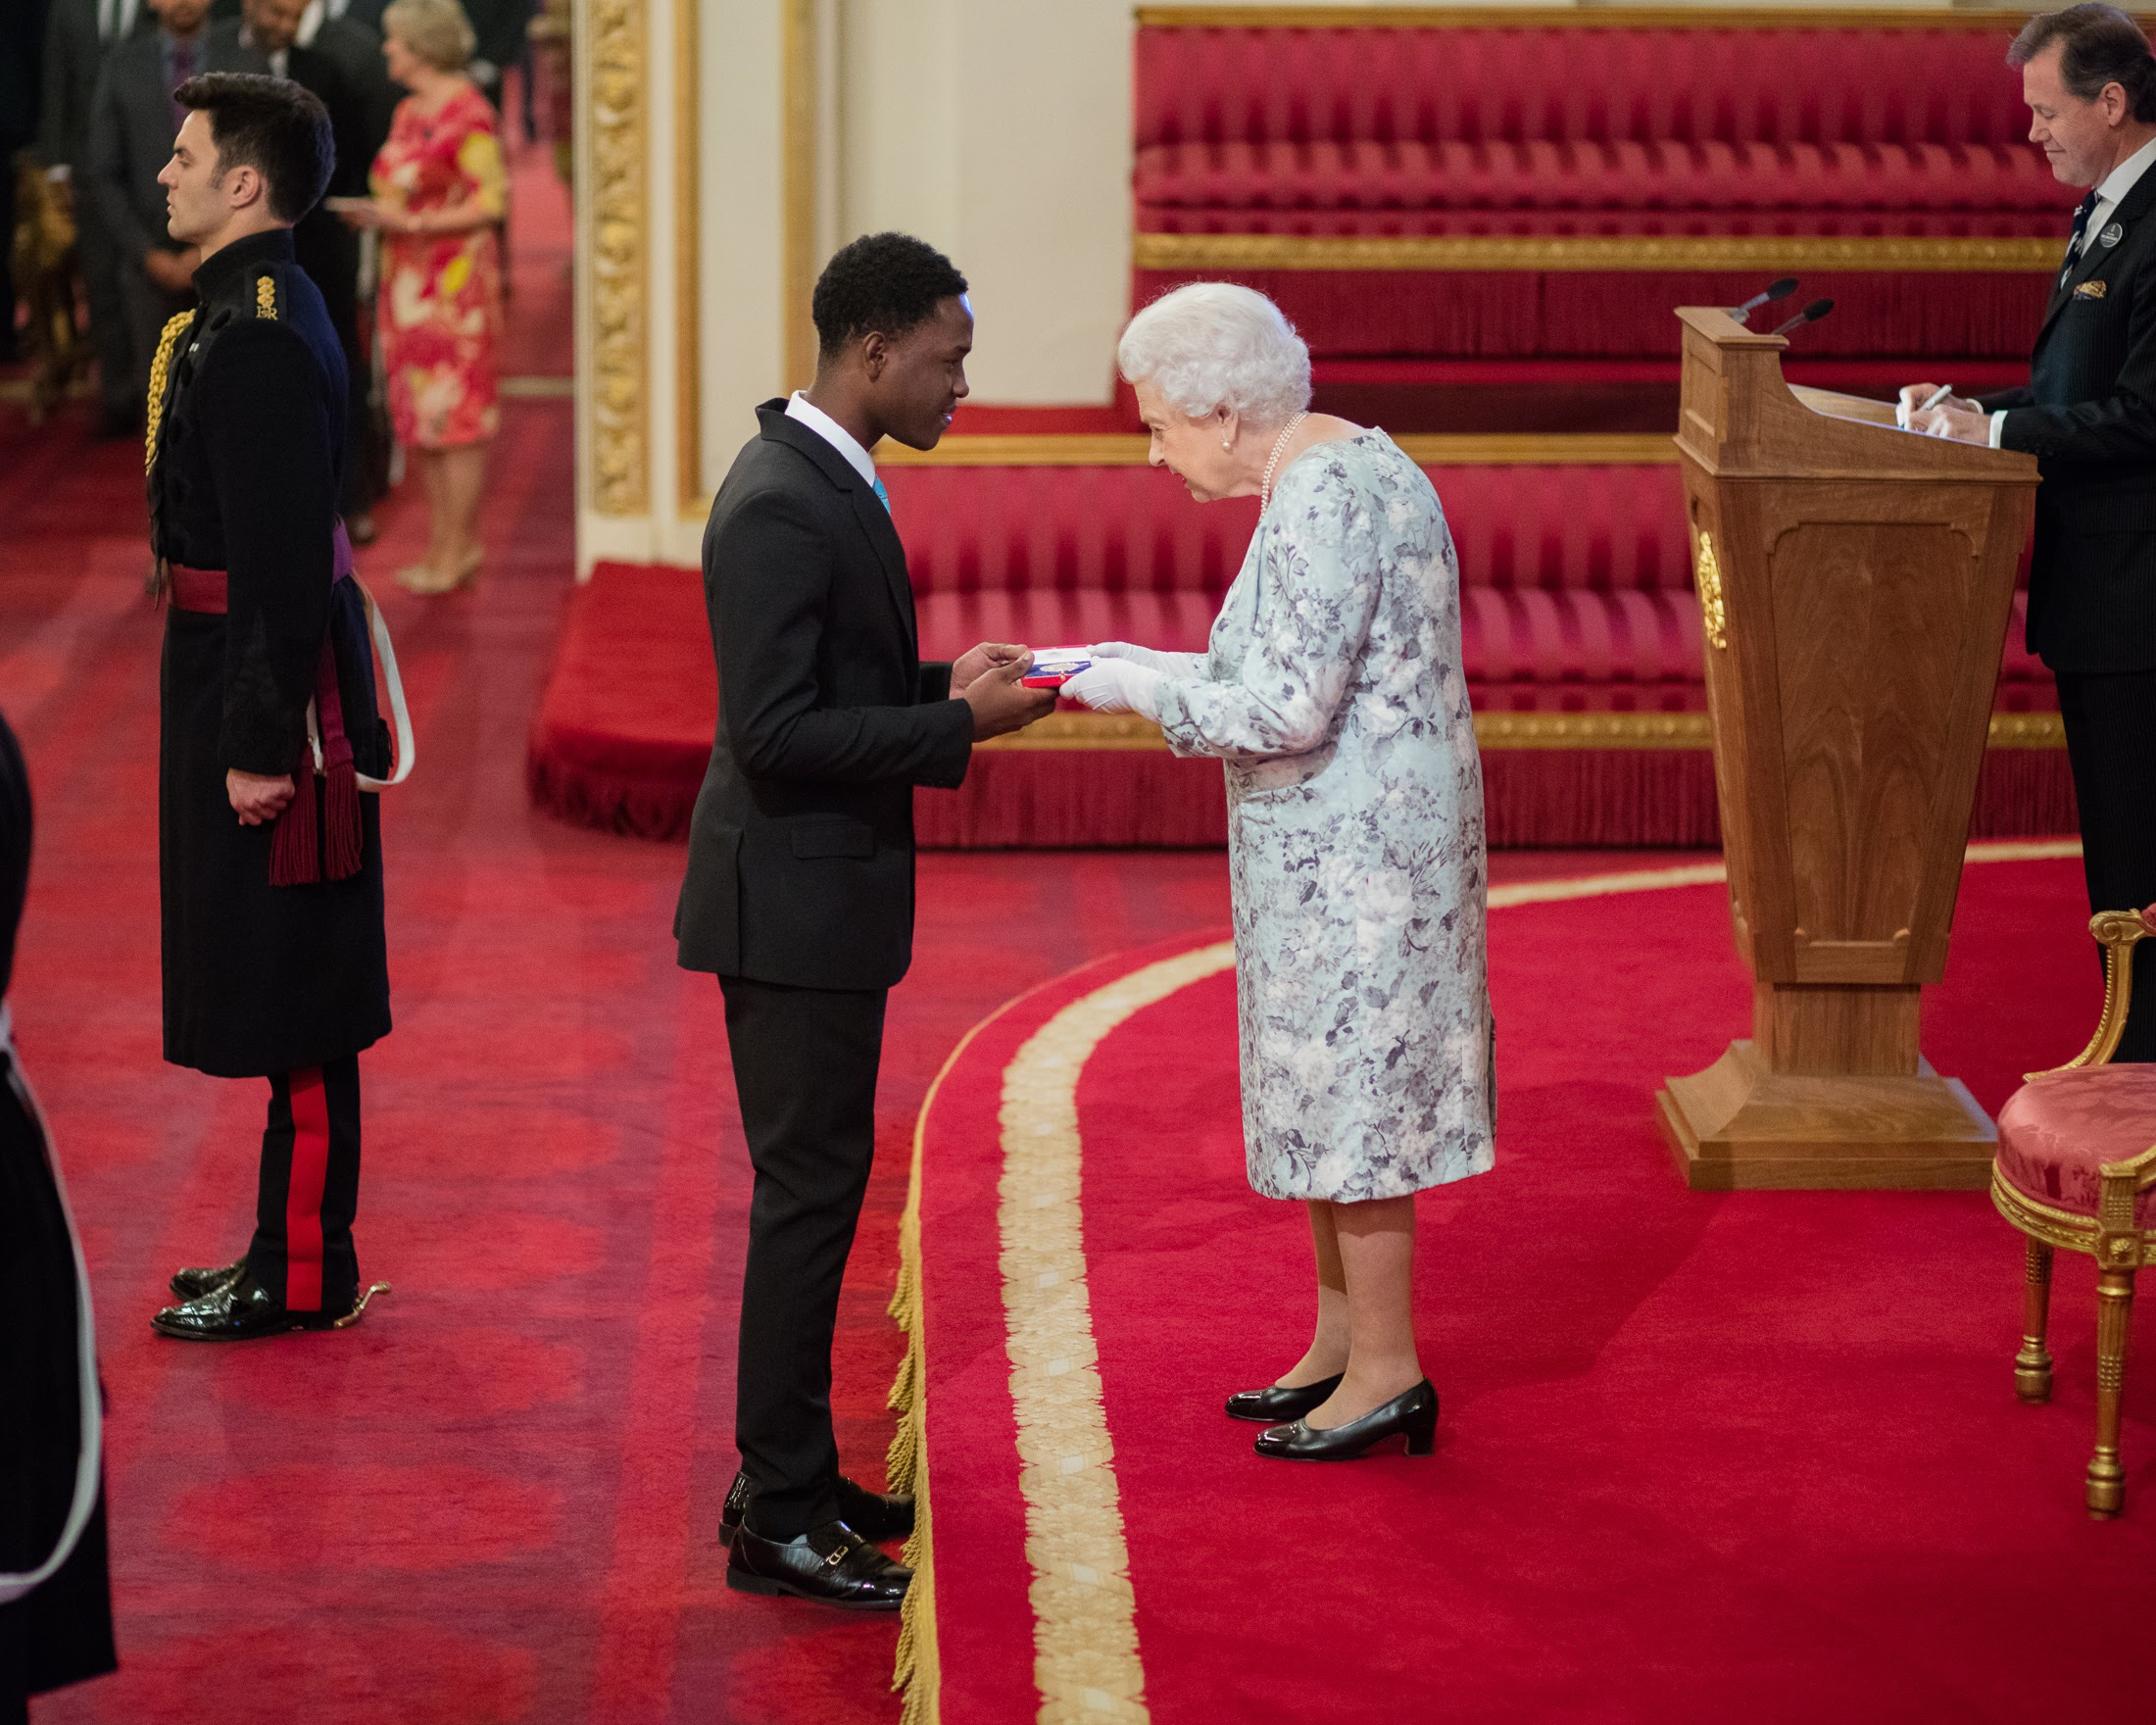 The 2017 Queen's Young Leaders receive their award from her majesty the Queen at Buckingham Palace.